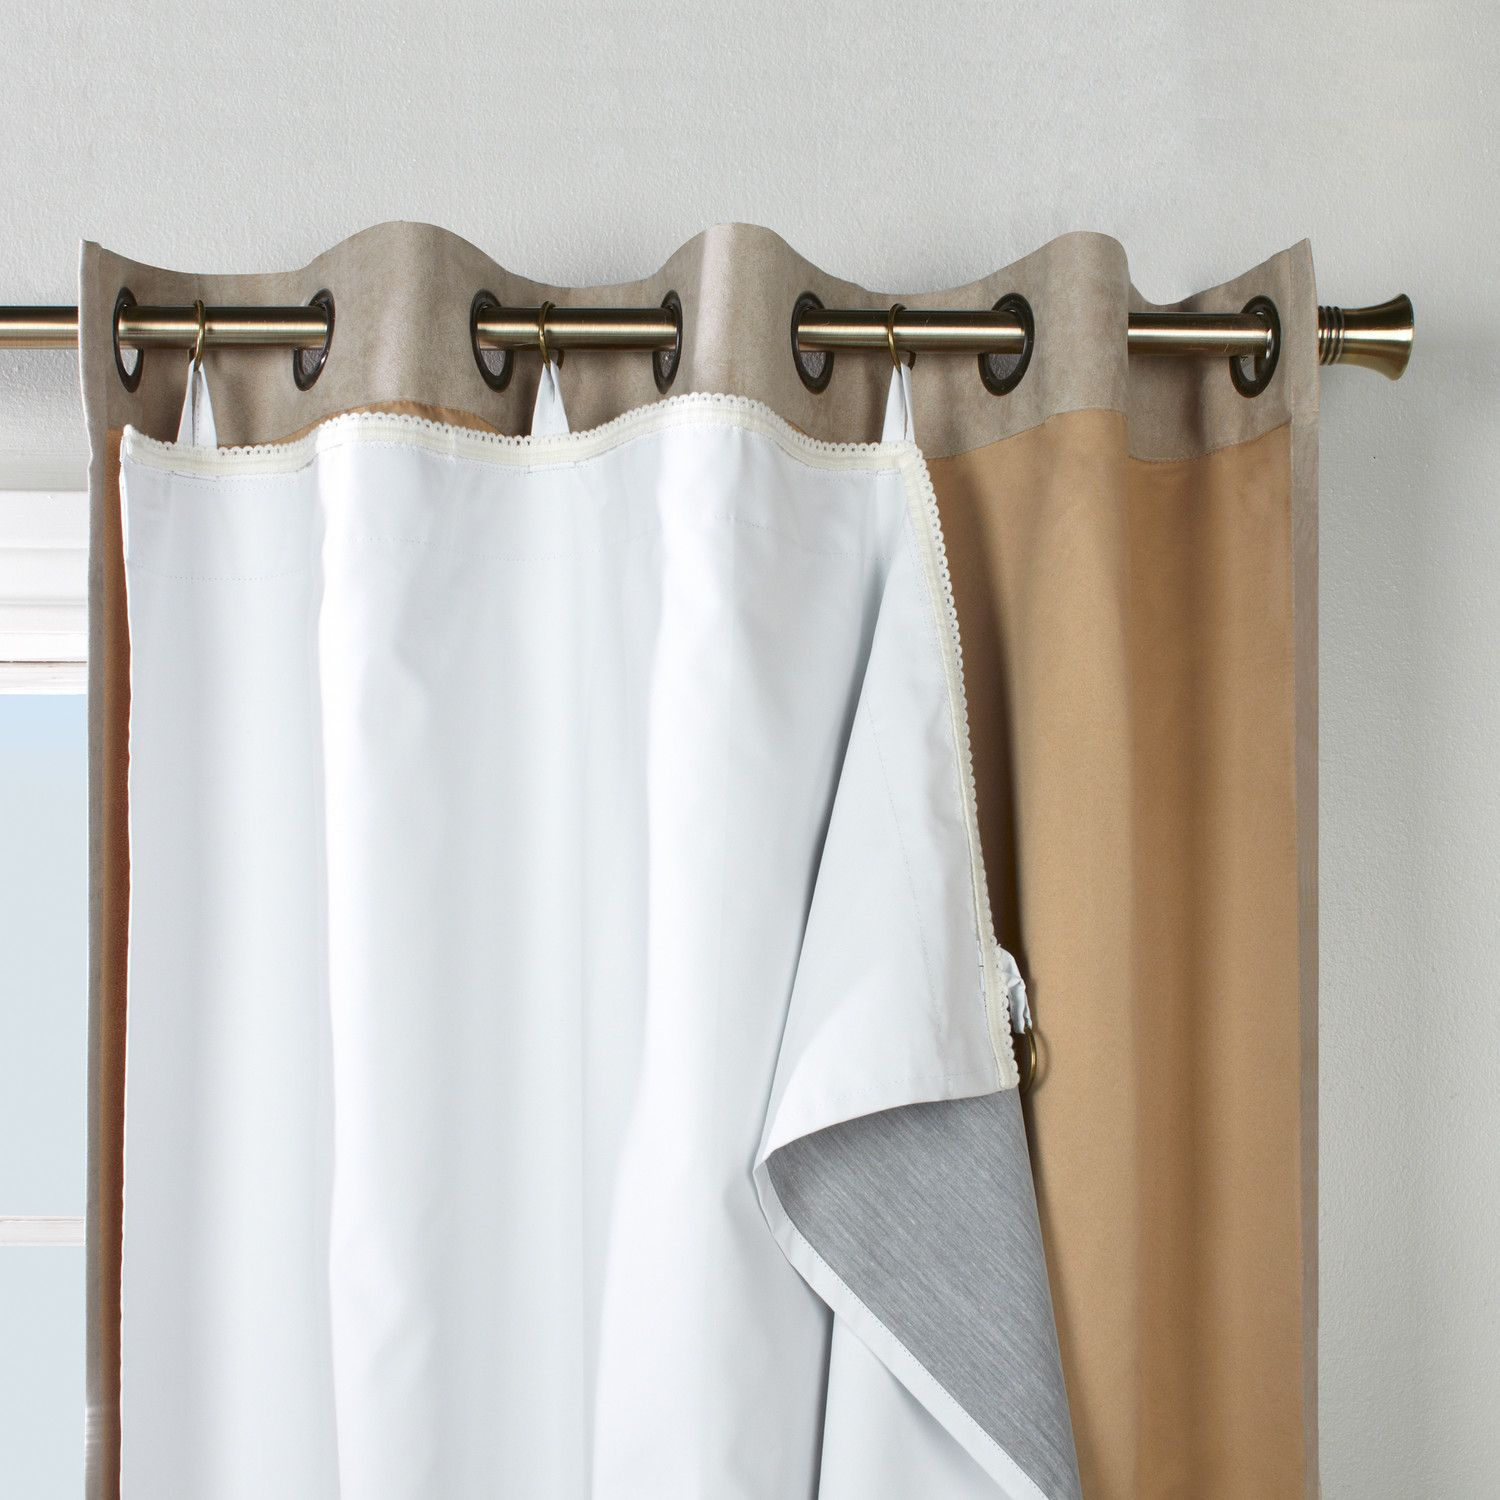 Cortinas Romanas De Blackout Blackout Curtain Liner More Than Just Light Blocker My Home Is